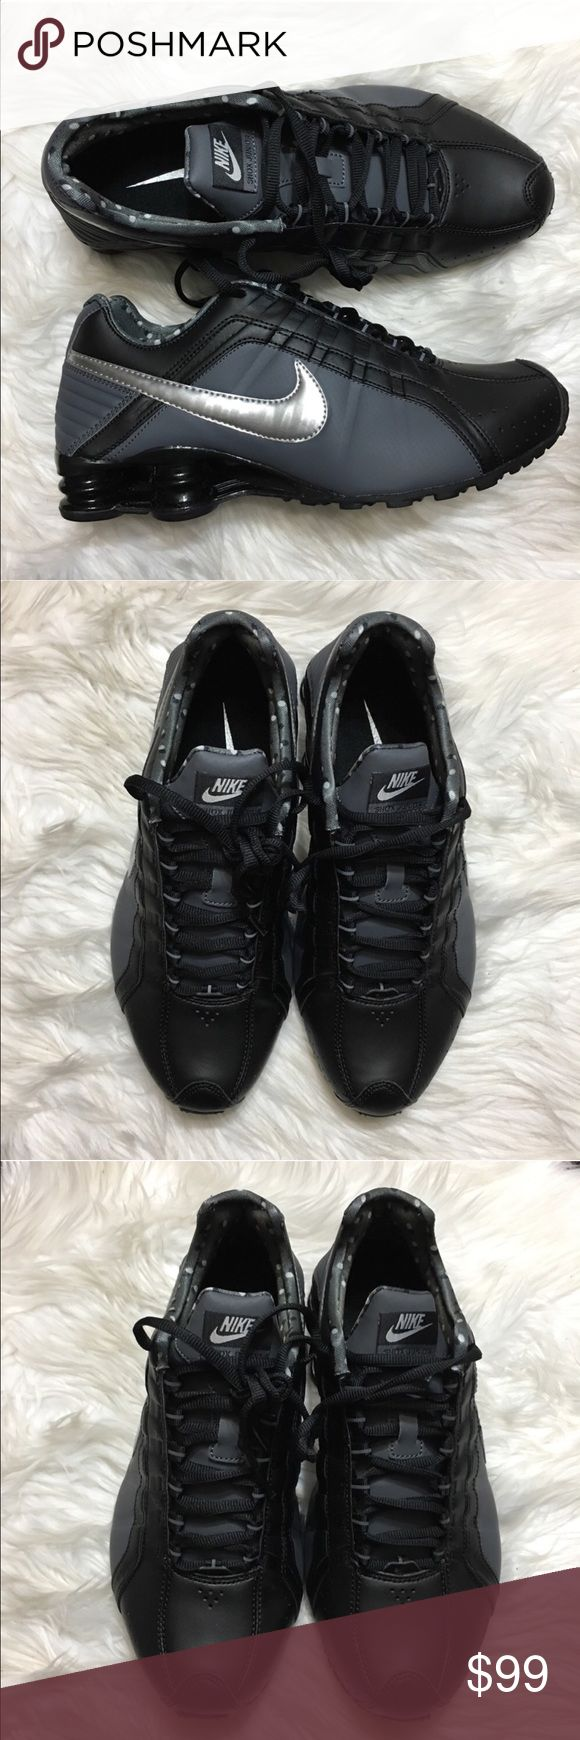 ⚡MAKE A OFFER⚡ Nike Shox Junior BRAND NEW- ORIGINAL BOX NO LID  ✅PRICE CAN BE NEGOTIATED THROUGH OFFER BUTTON                                                                                                             ✅NEXT DAY SHIPPING ✅BUNDLES DISCOUNT                                                                 🙅🏻 NO TRADES 🙅🏻NO LOWBALLING Nike Shoes Athletic Shoes